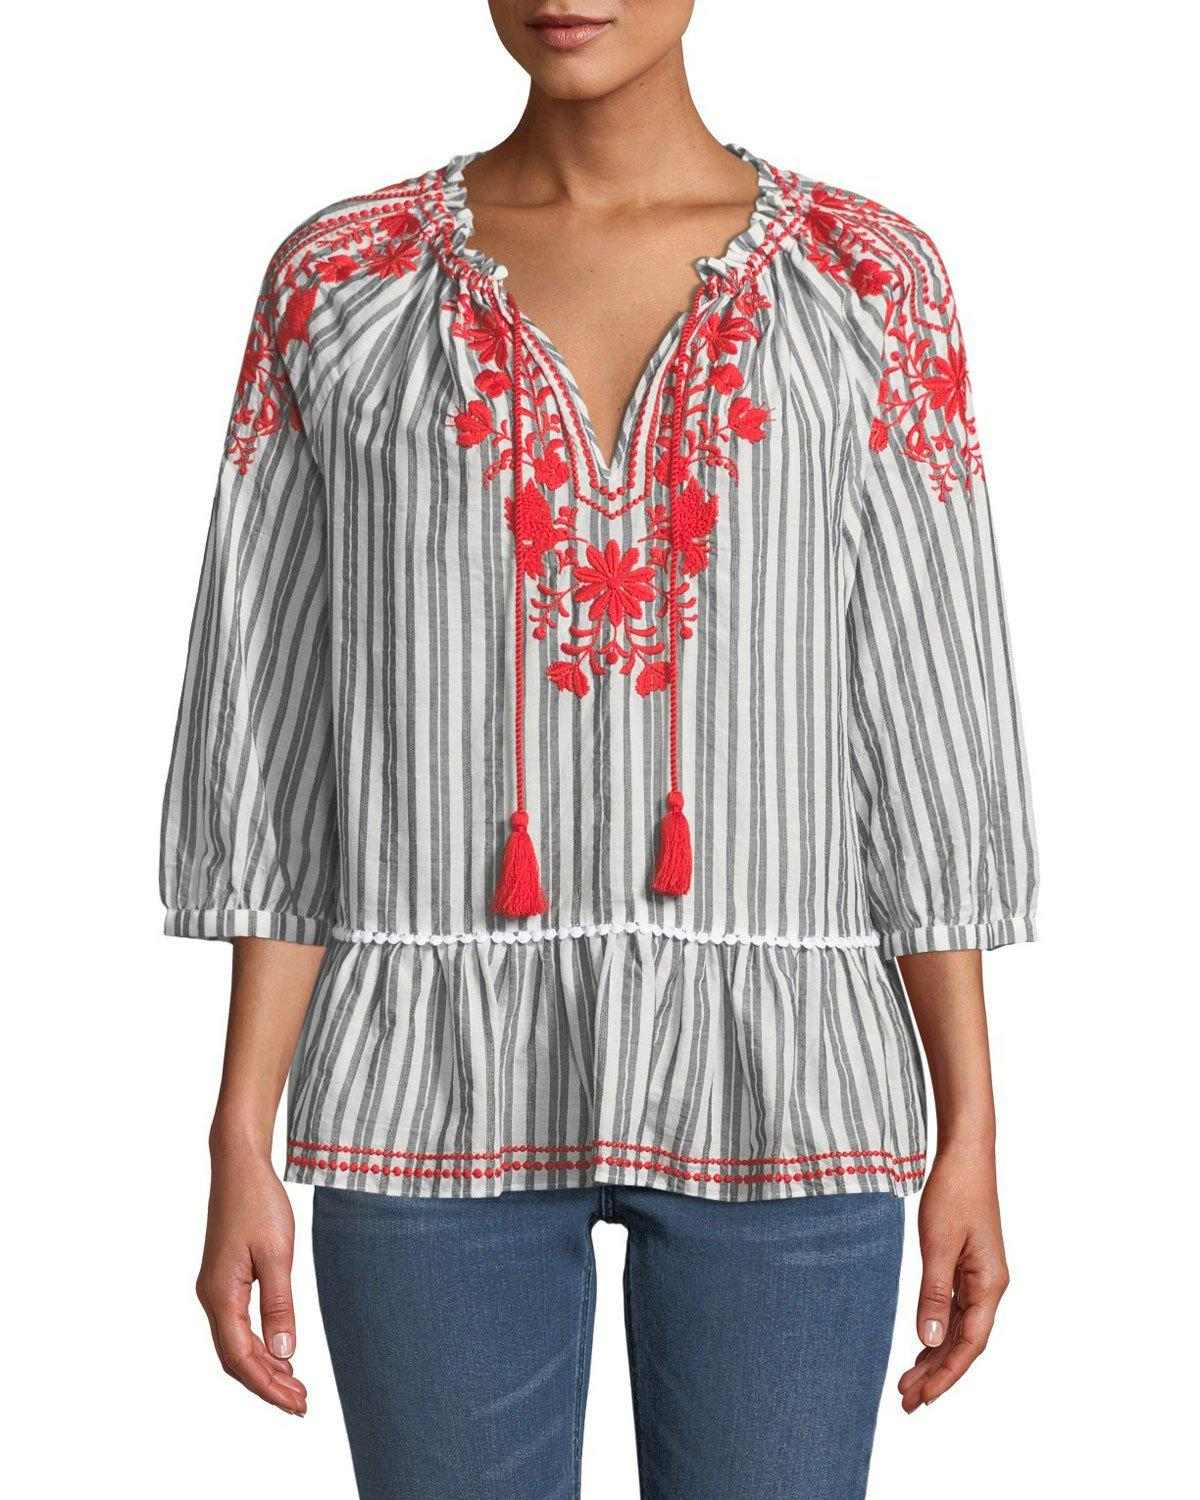 8fcc019a2ac5 Kate Spade Broome Street Embroidered Striped Top In White/Black ...